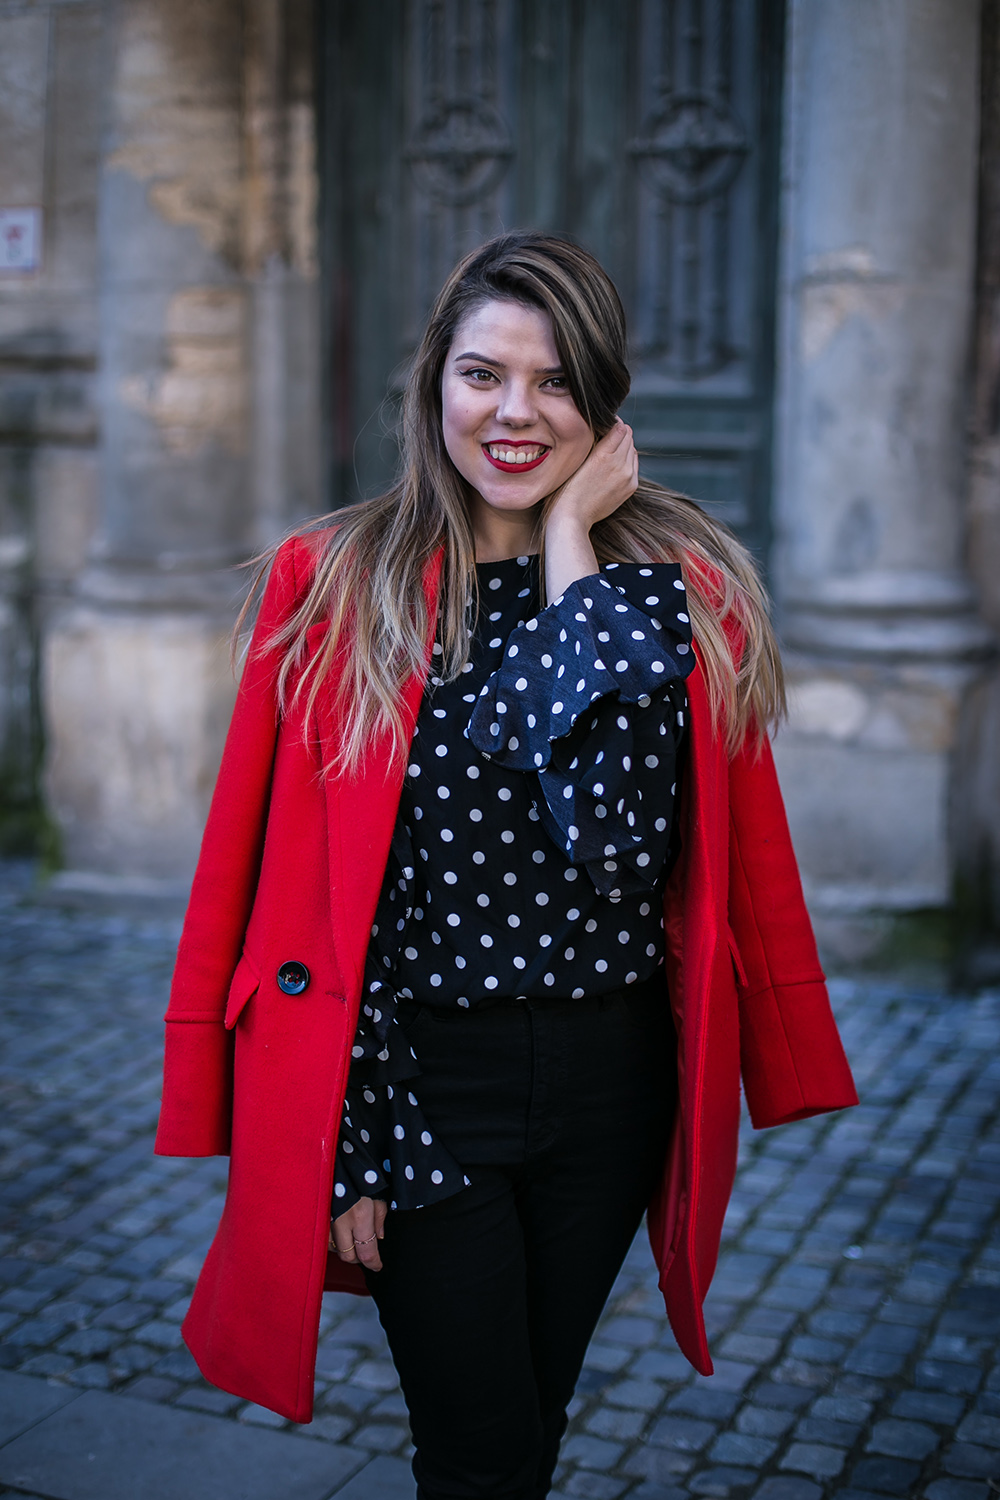 red coat and black outfit